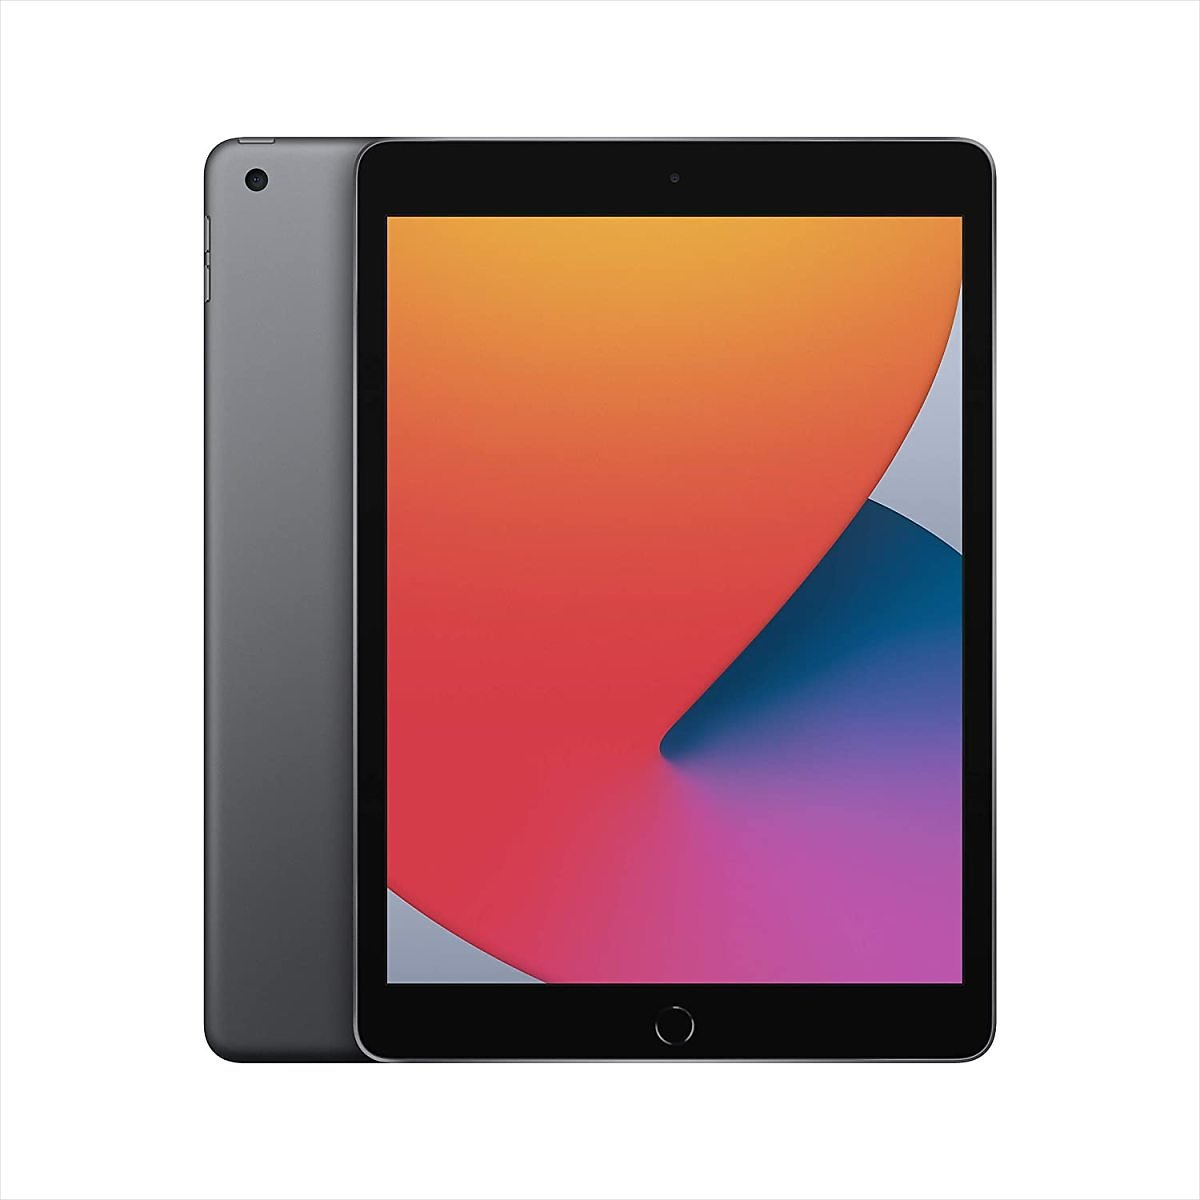 New Apple IPad (10.2-inch, Wi-Fi, 32GB) - Latest Model, 8th Generation - Space Gray or Gold